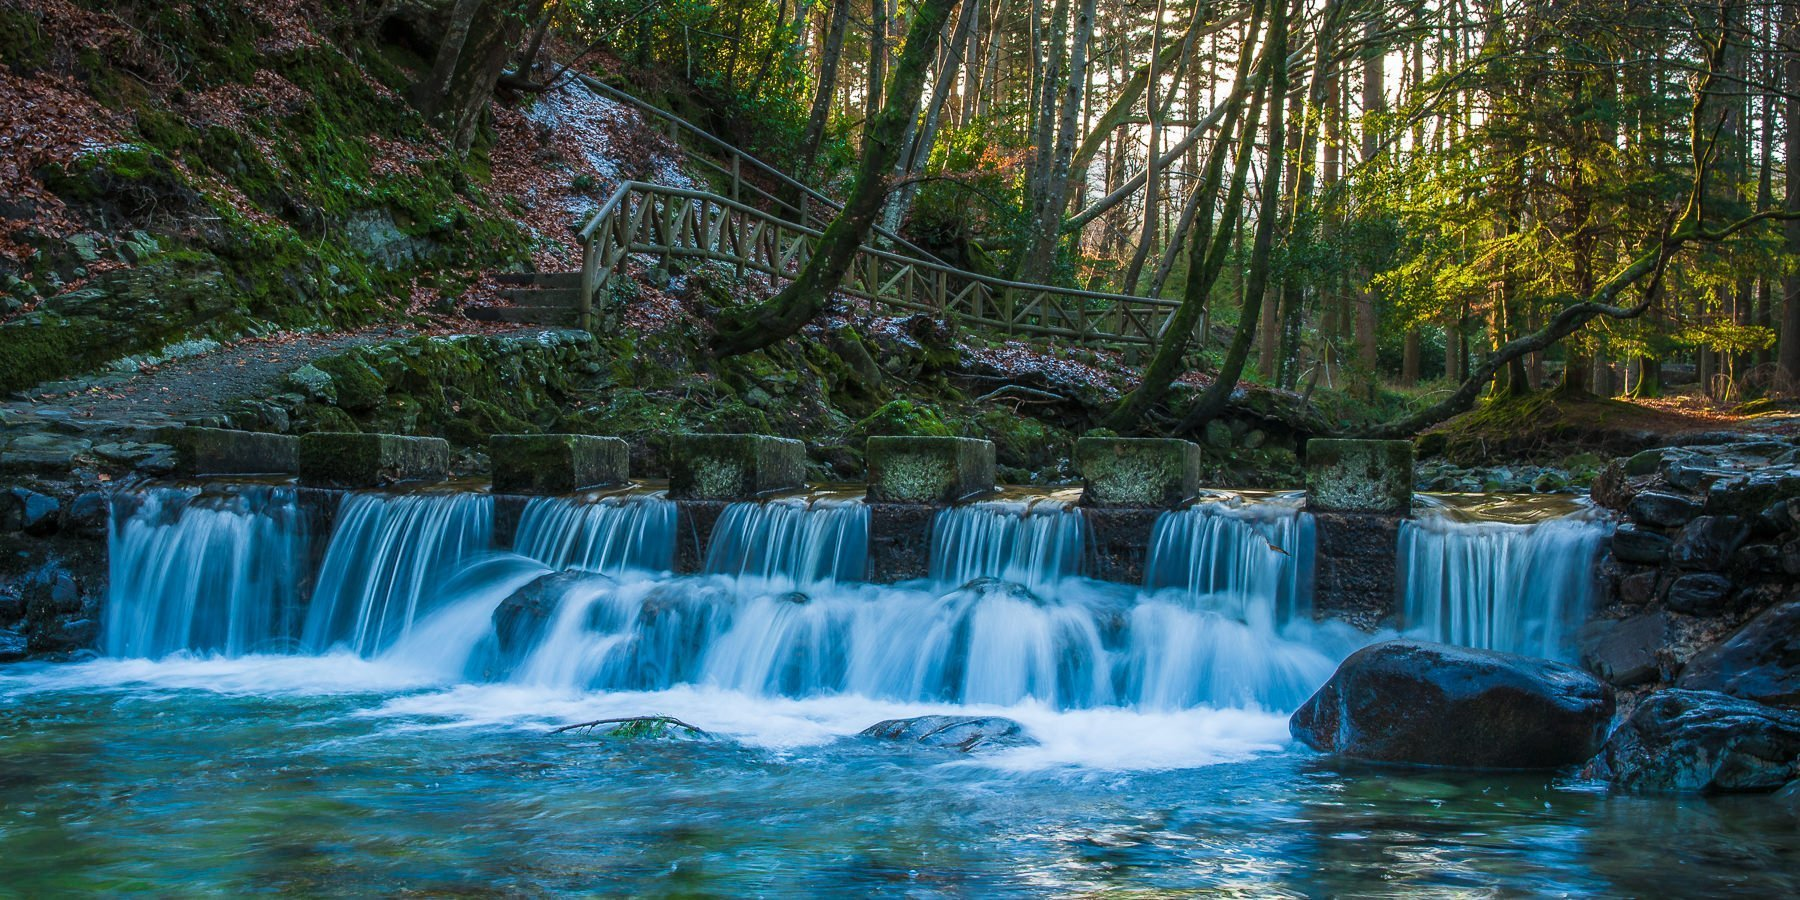 Stepping stones crossing a small waterfall in a forest